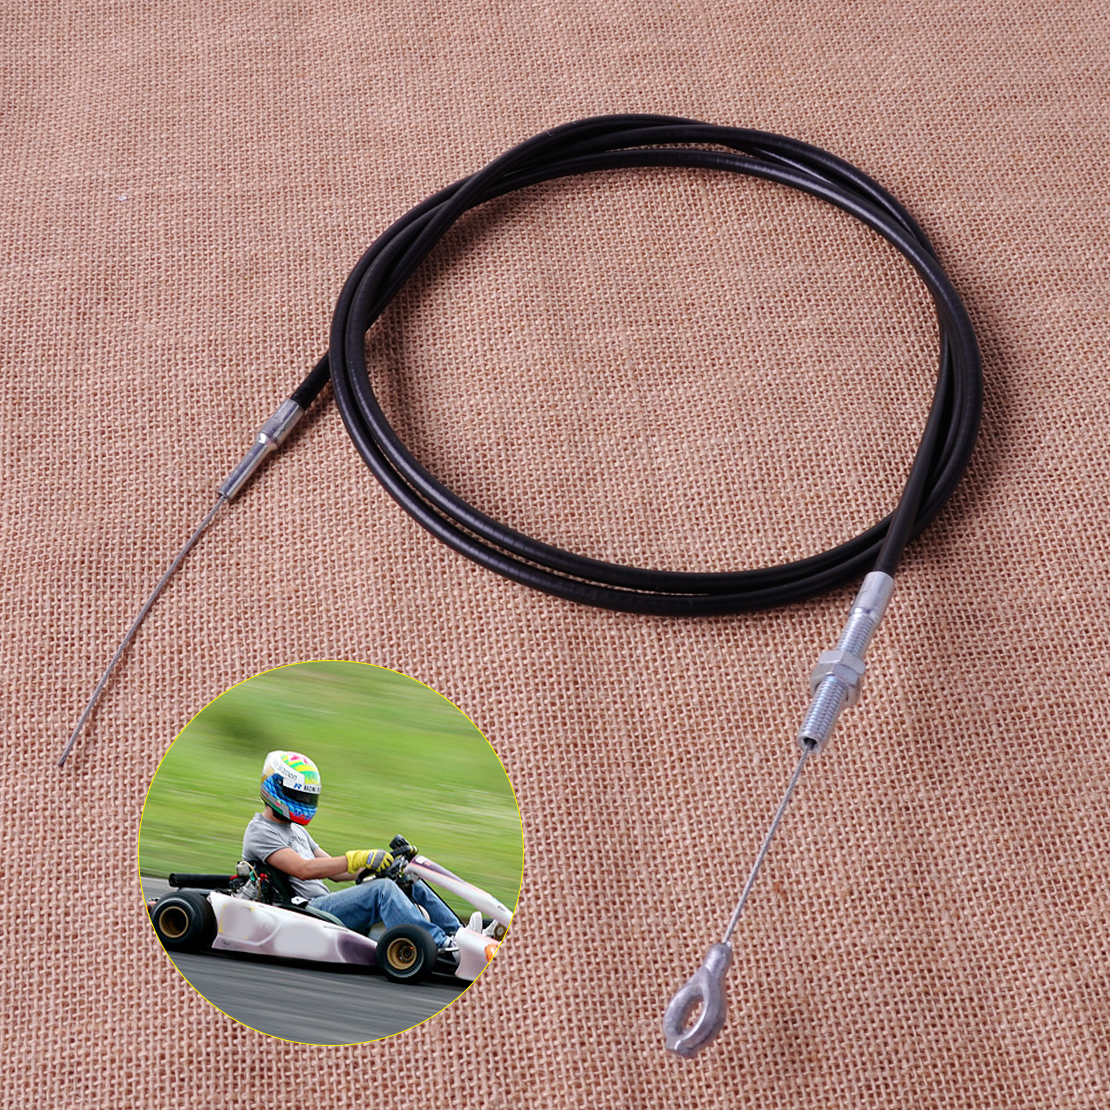 CITALL 71 inch Long Throttle Cable Wire with 63 inch Casing Part Fit for Manco 4xx models go karts 8252-1390